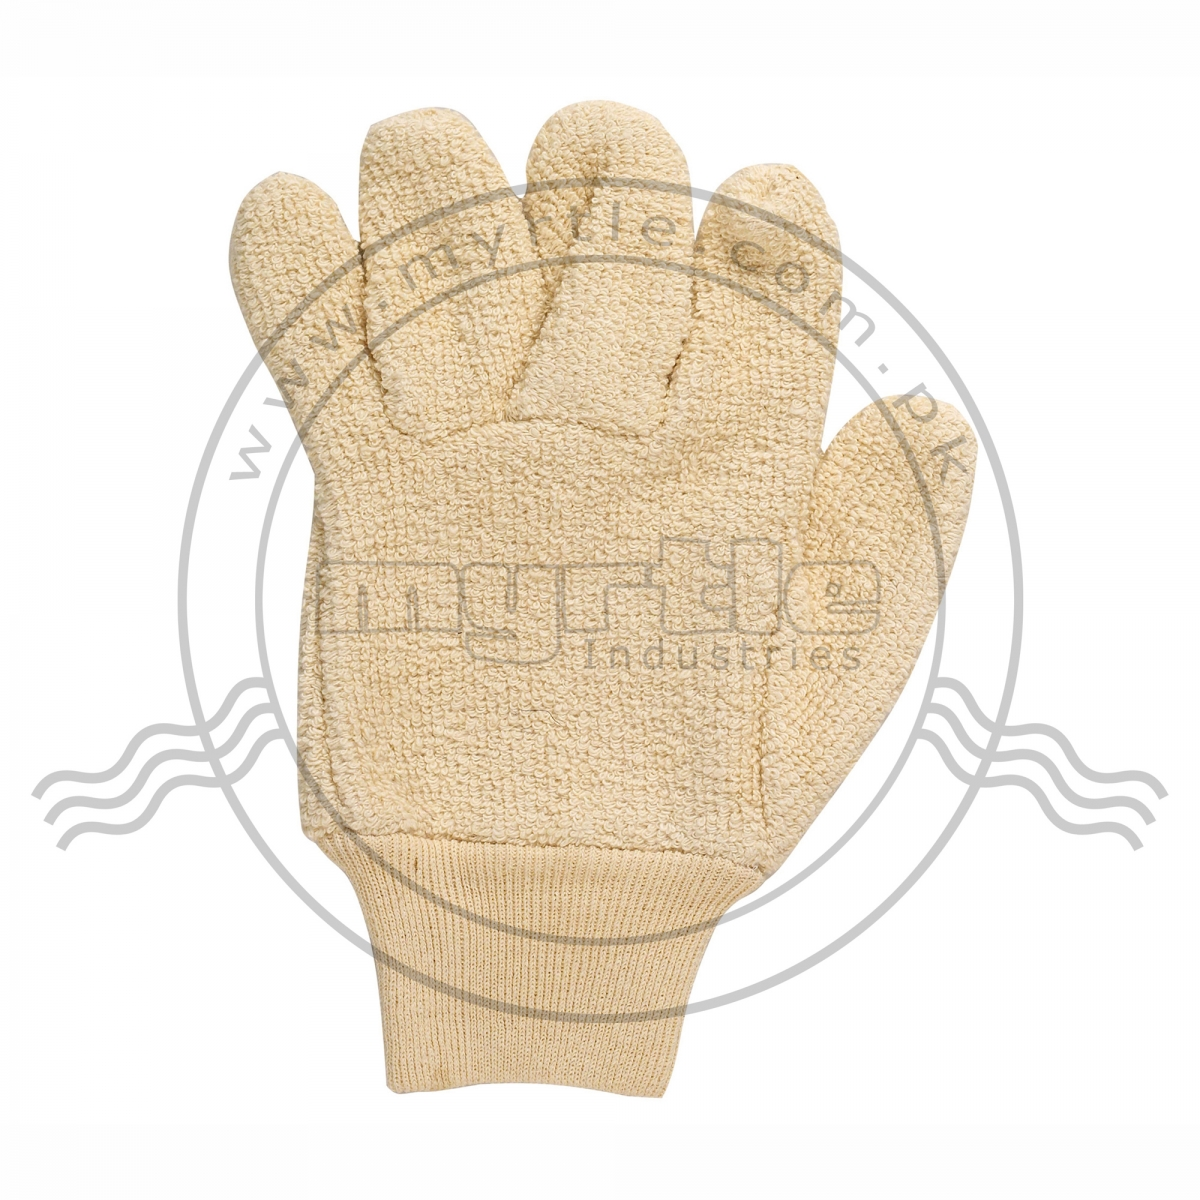 TERRY GLOVES WITH ELASTIC CUFF